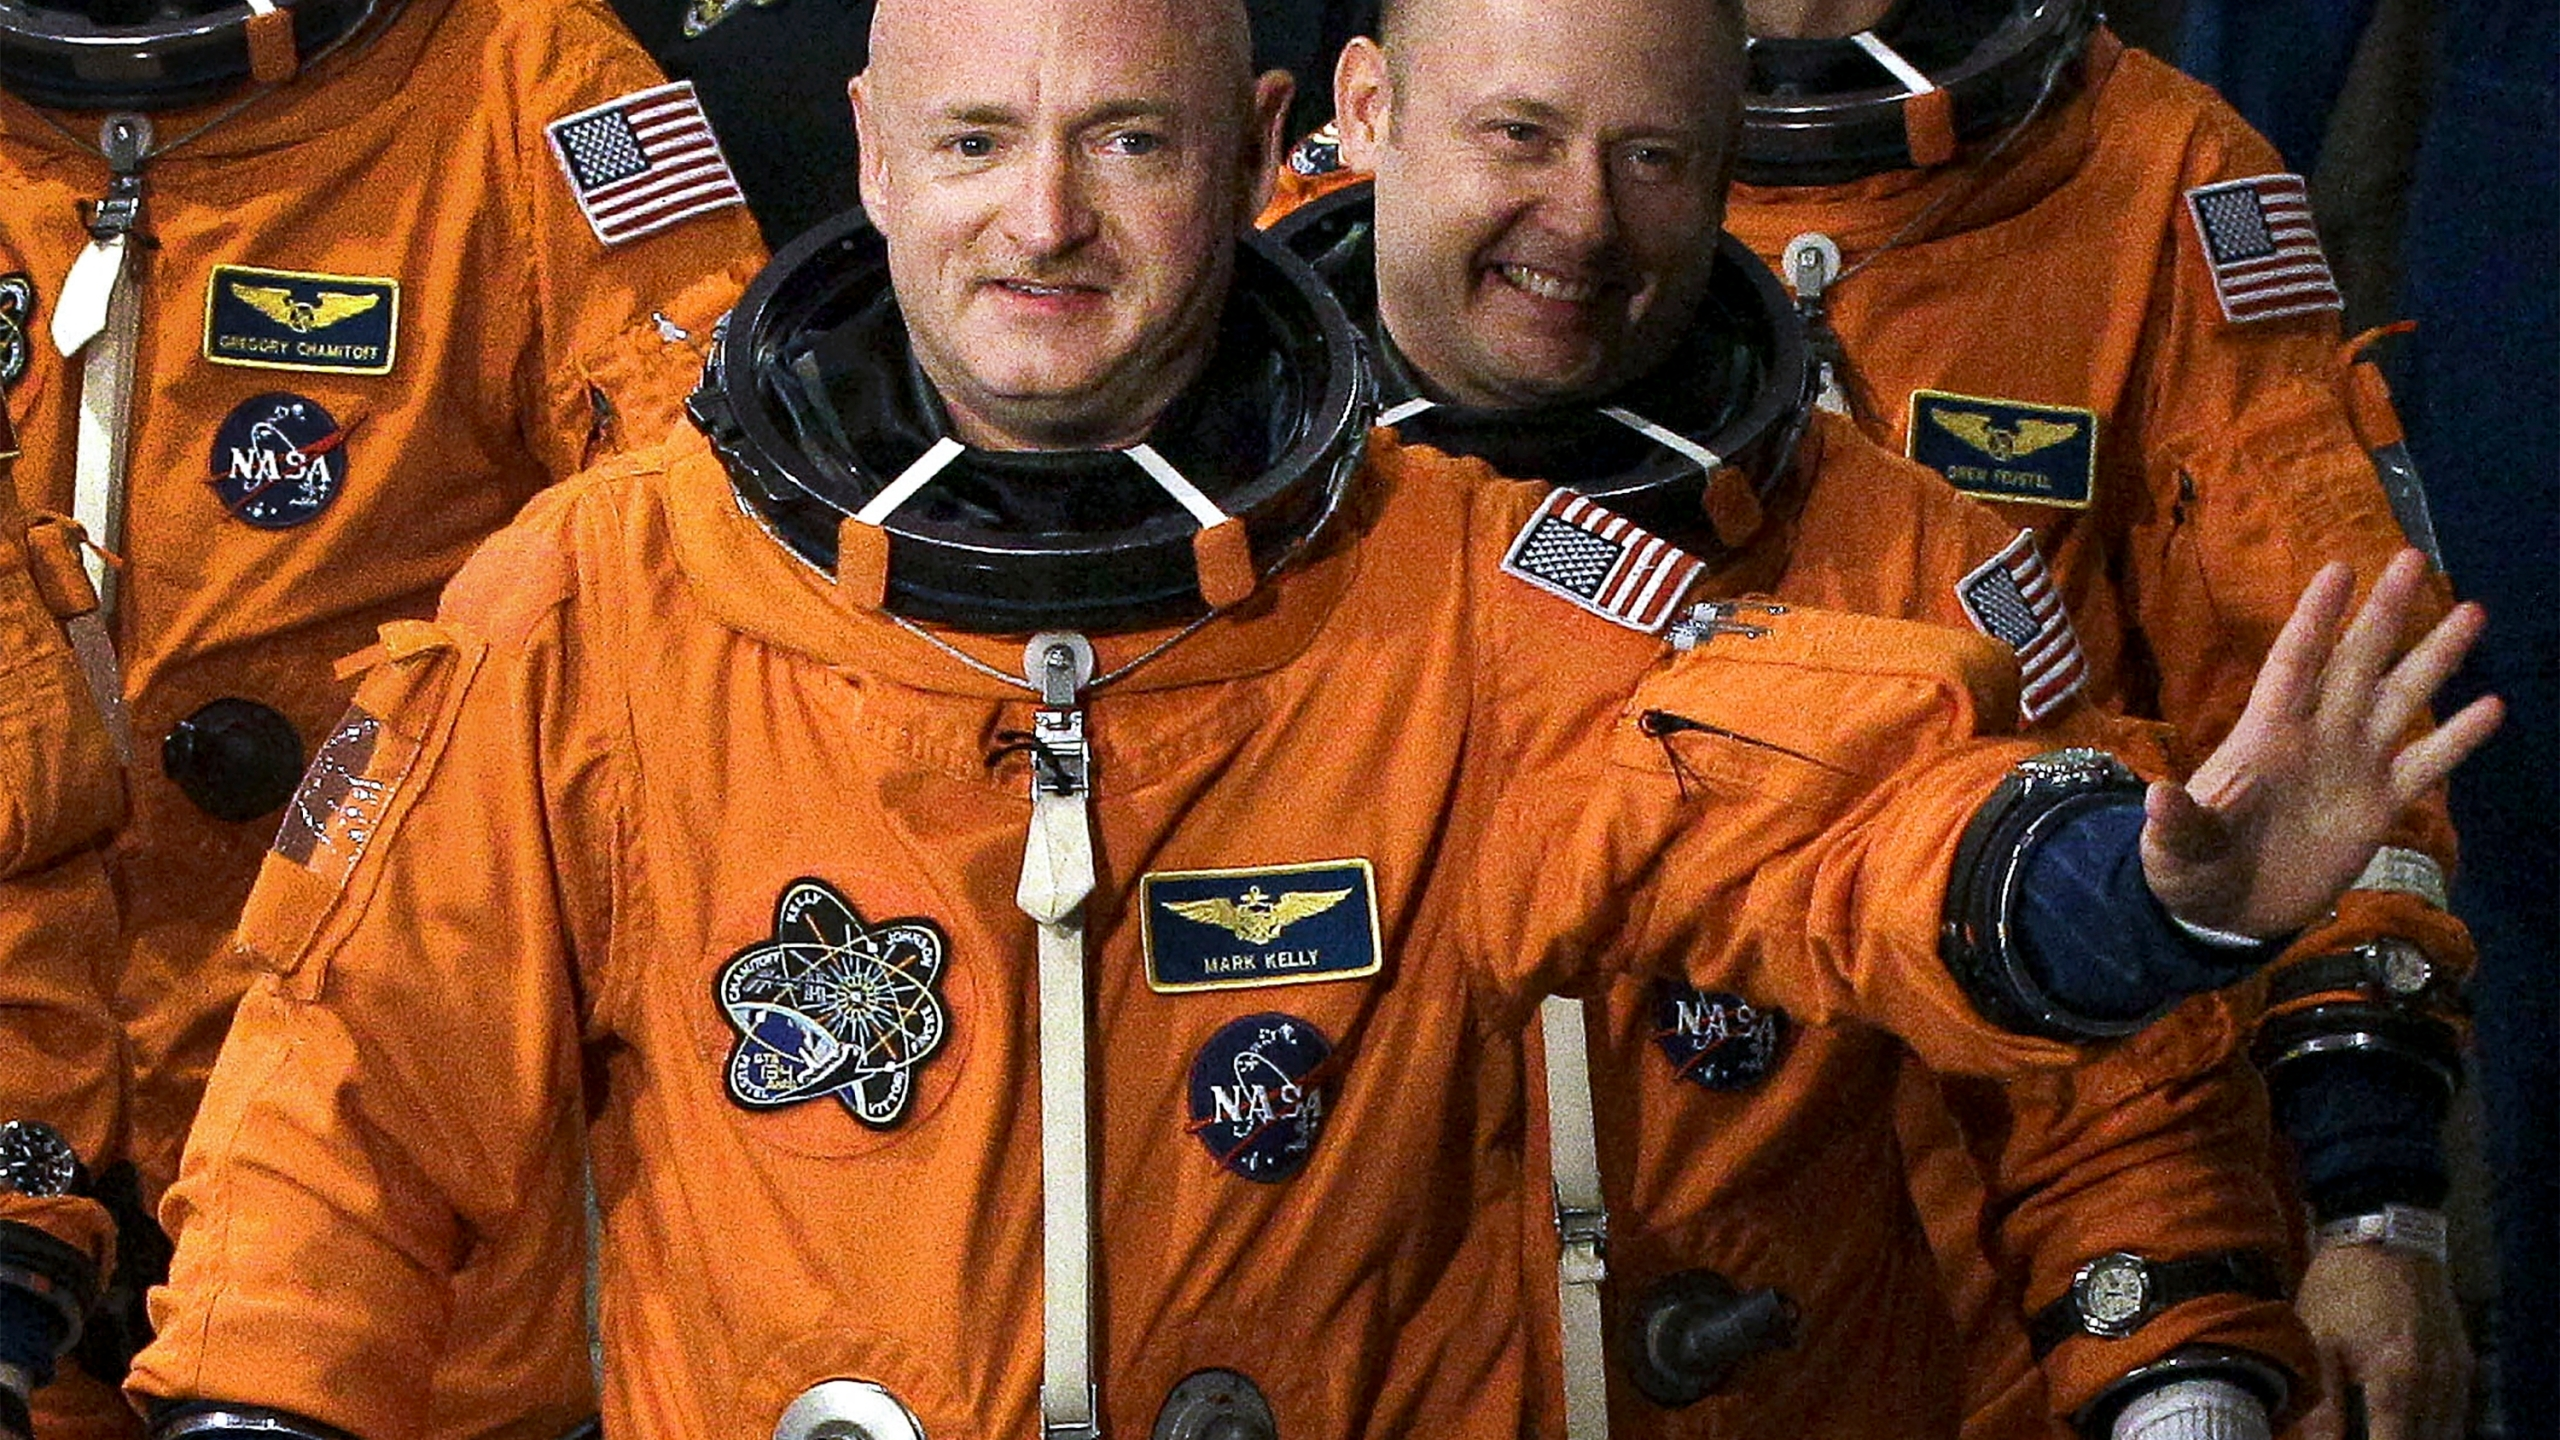 Mark Kelly, Mike Fincke